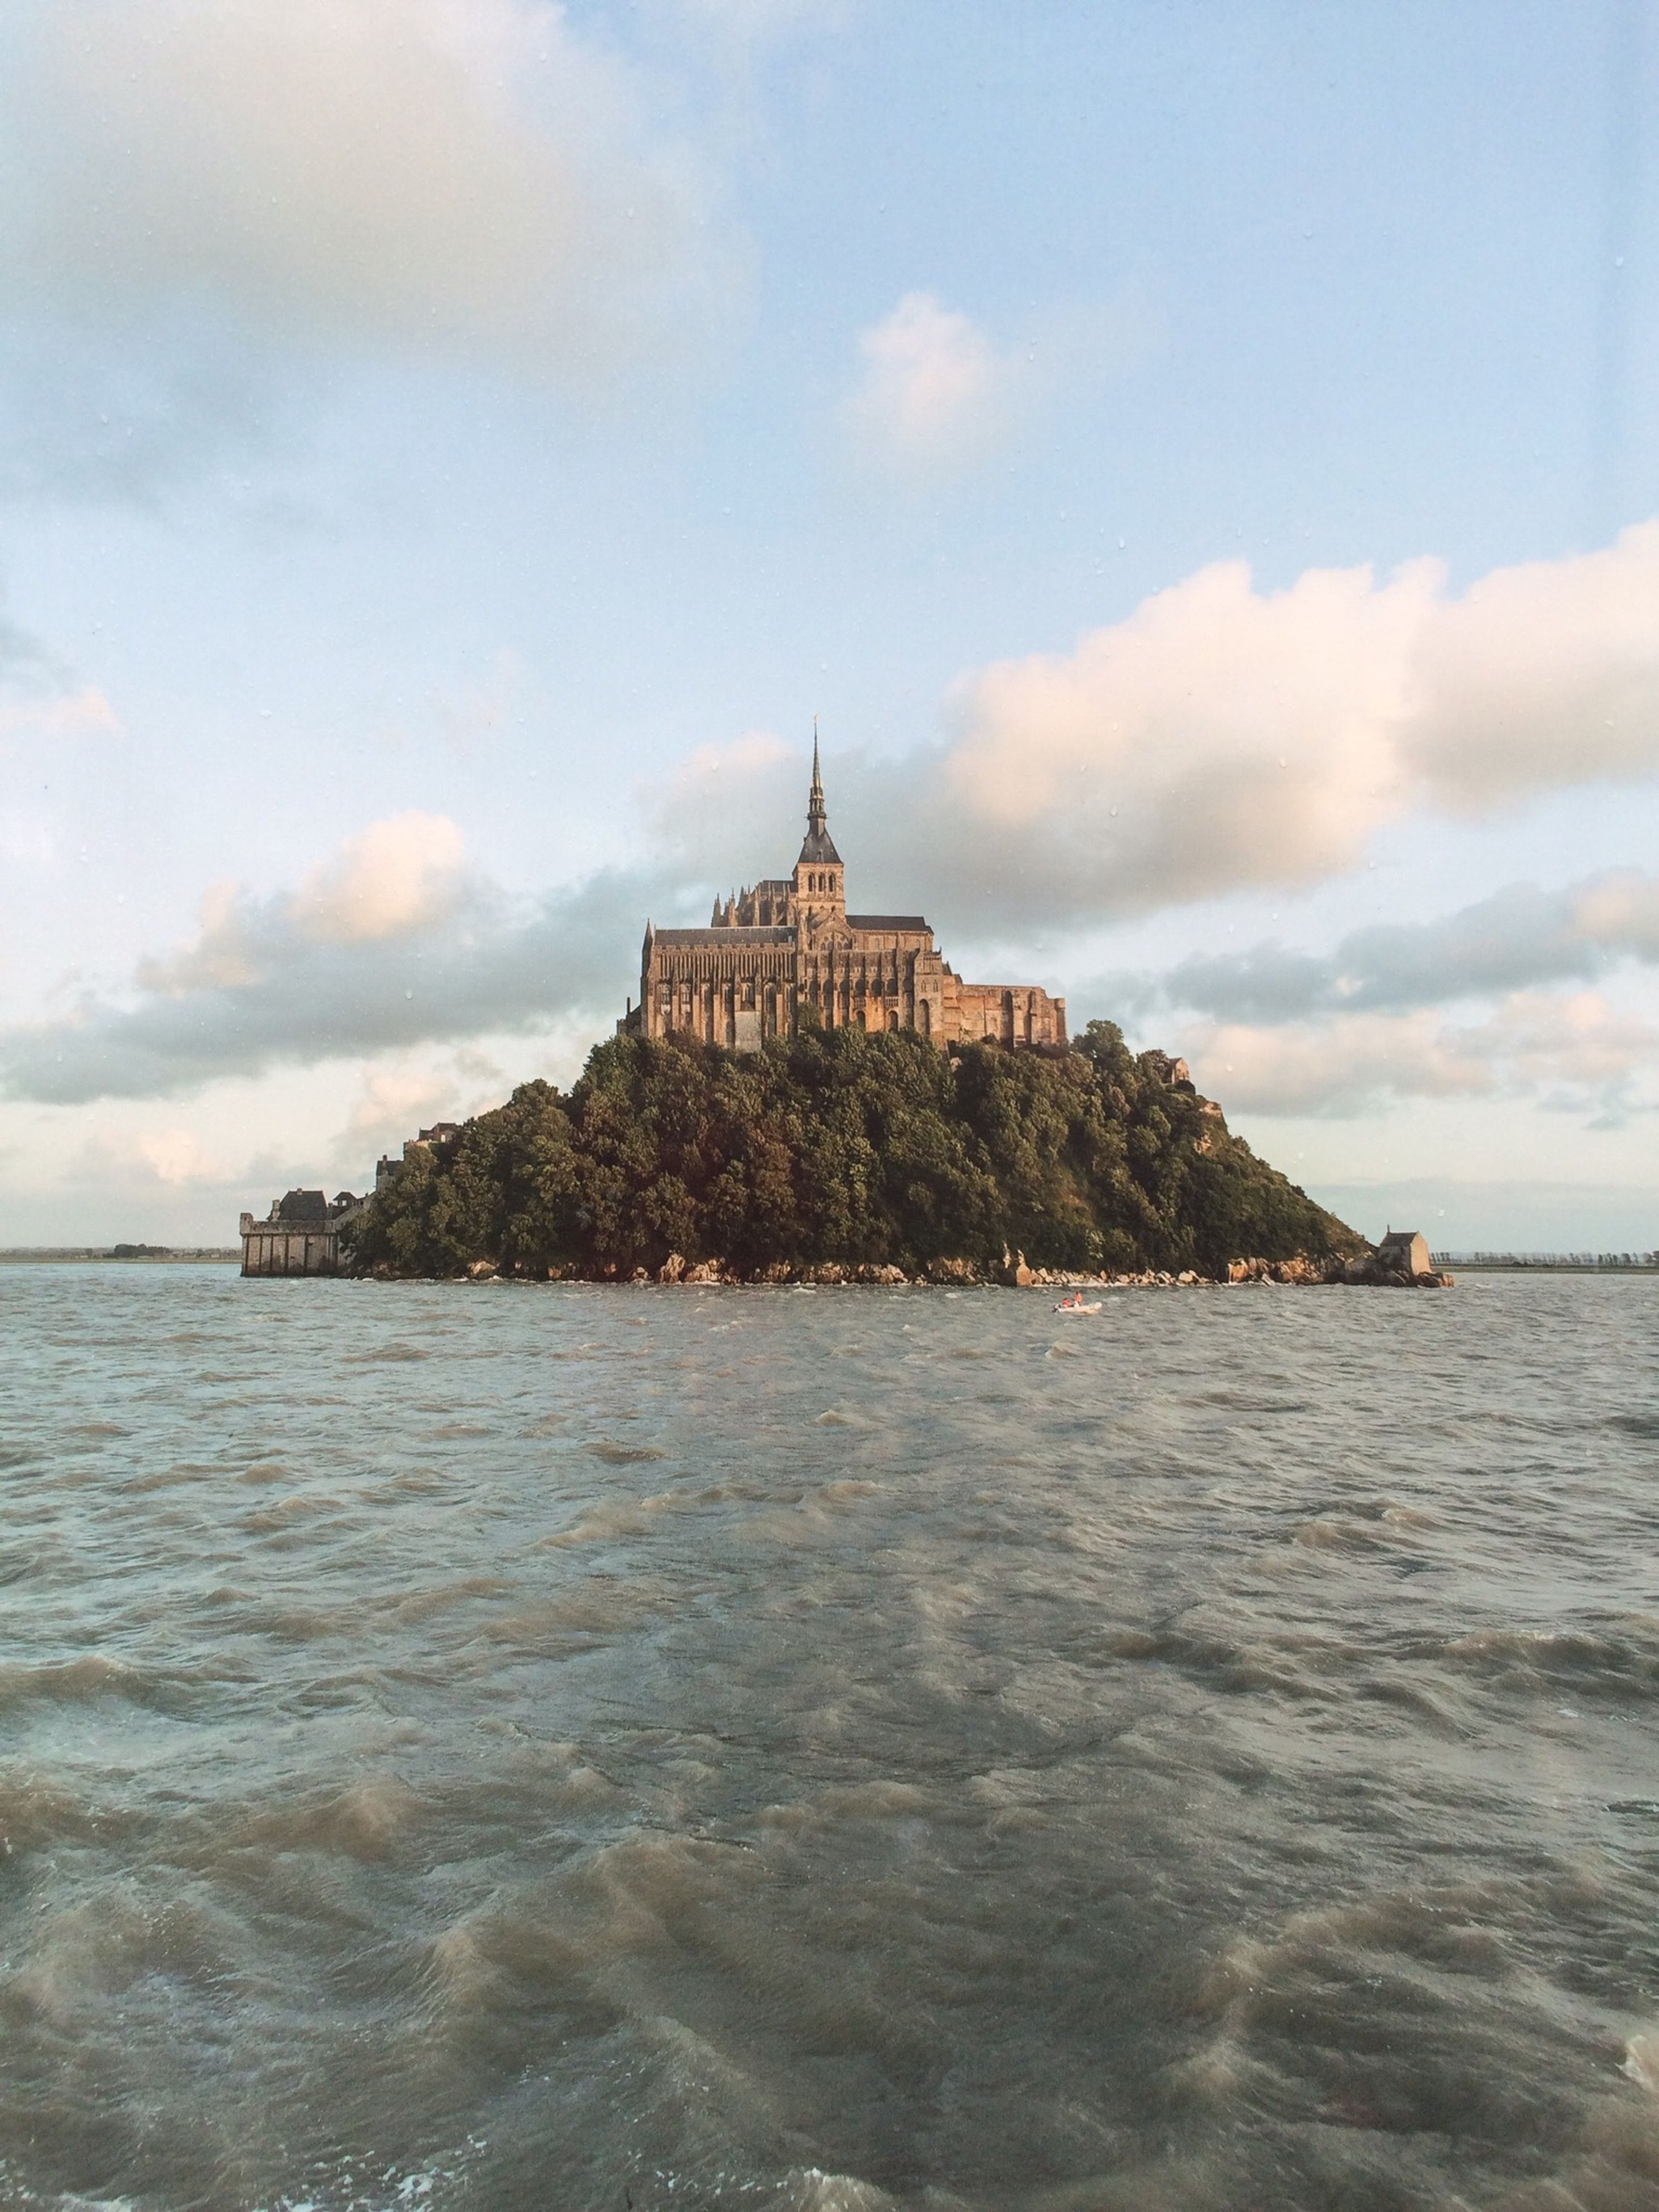 architecture, built structure, water, building exterior, sea, sky, waterfront, cloud - sky, famous place, travel destinations, religion, tourism, travel, history, spirituality, horizon over water, place of worship, cloud, tower, cloudy